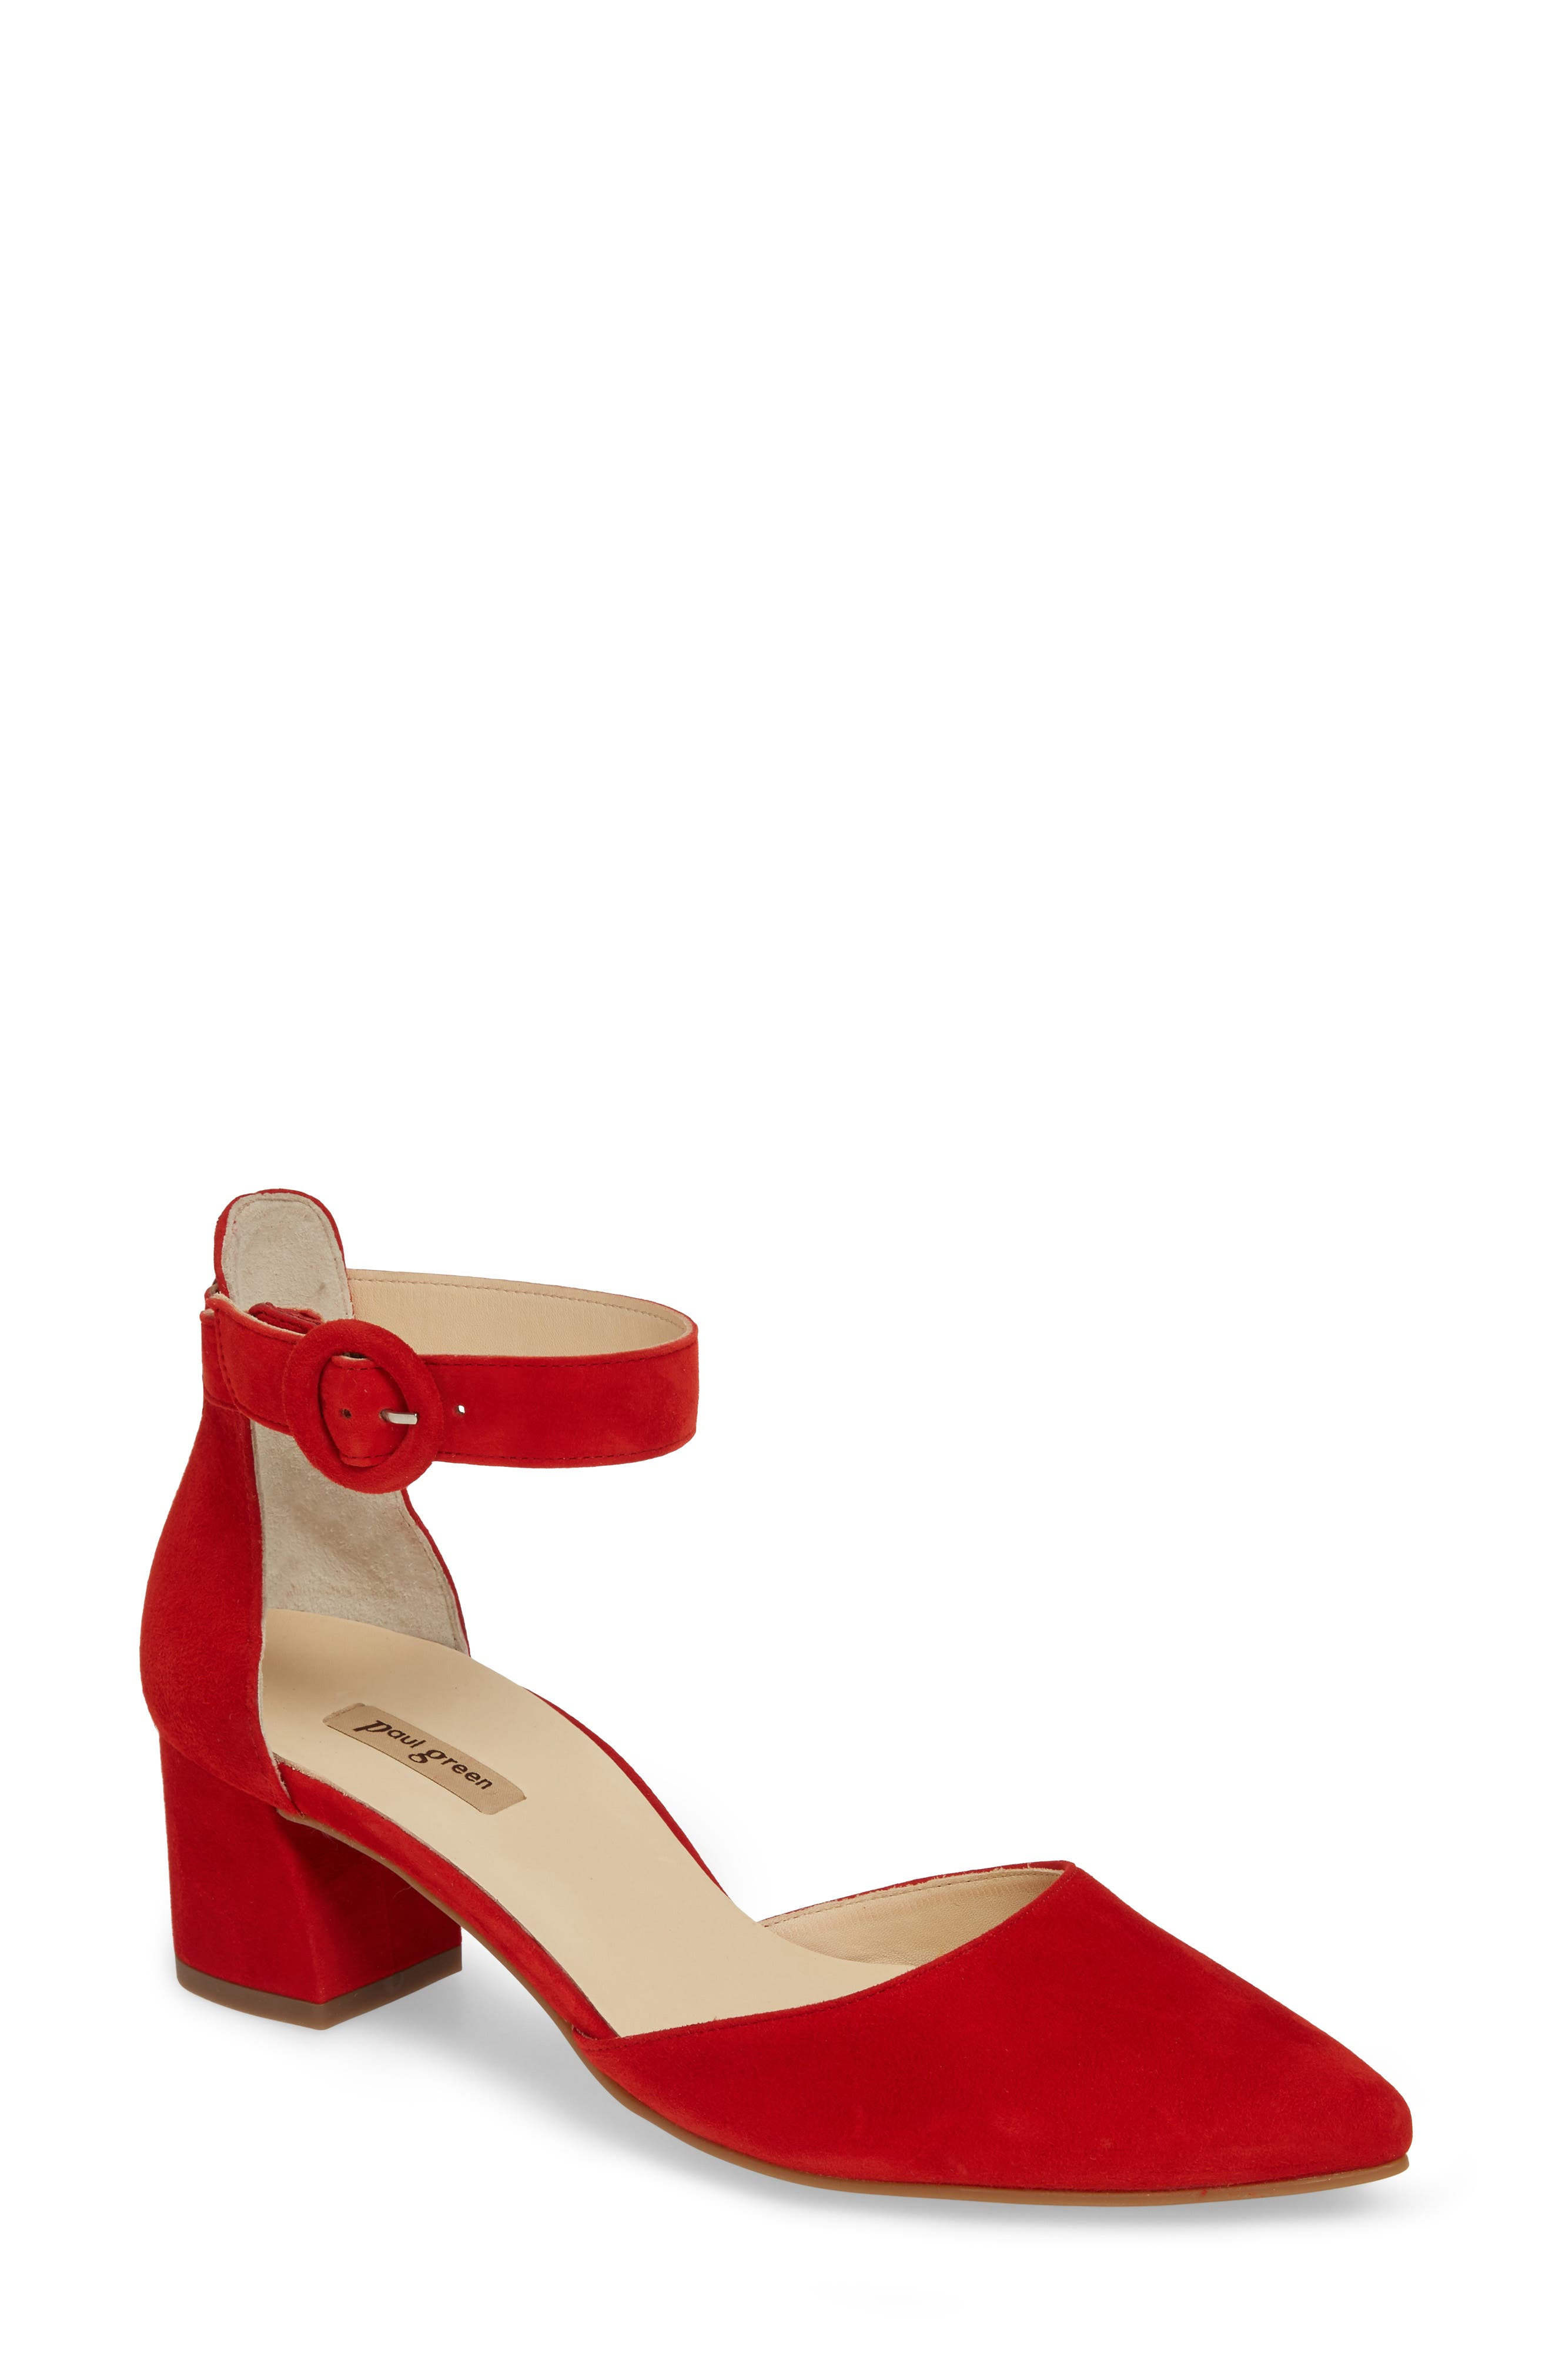 59fc6001a0 Paul Green Annie Ankle Strap PumpUS /4UK - Red